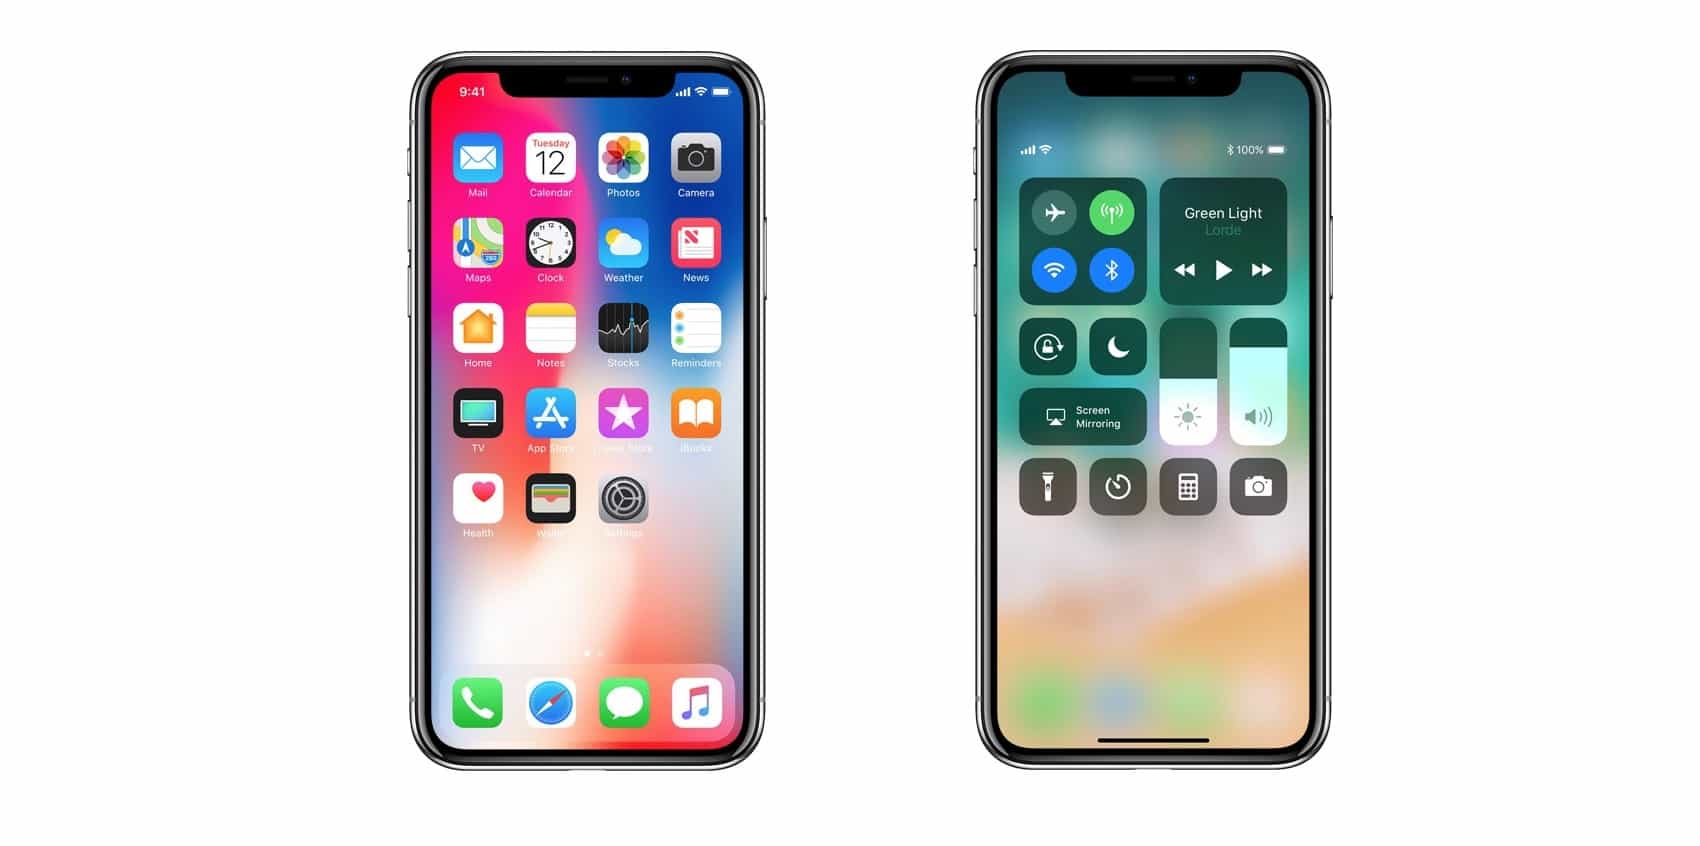 iPhone x battery percentage control center